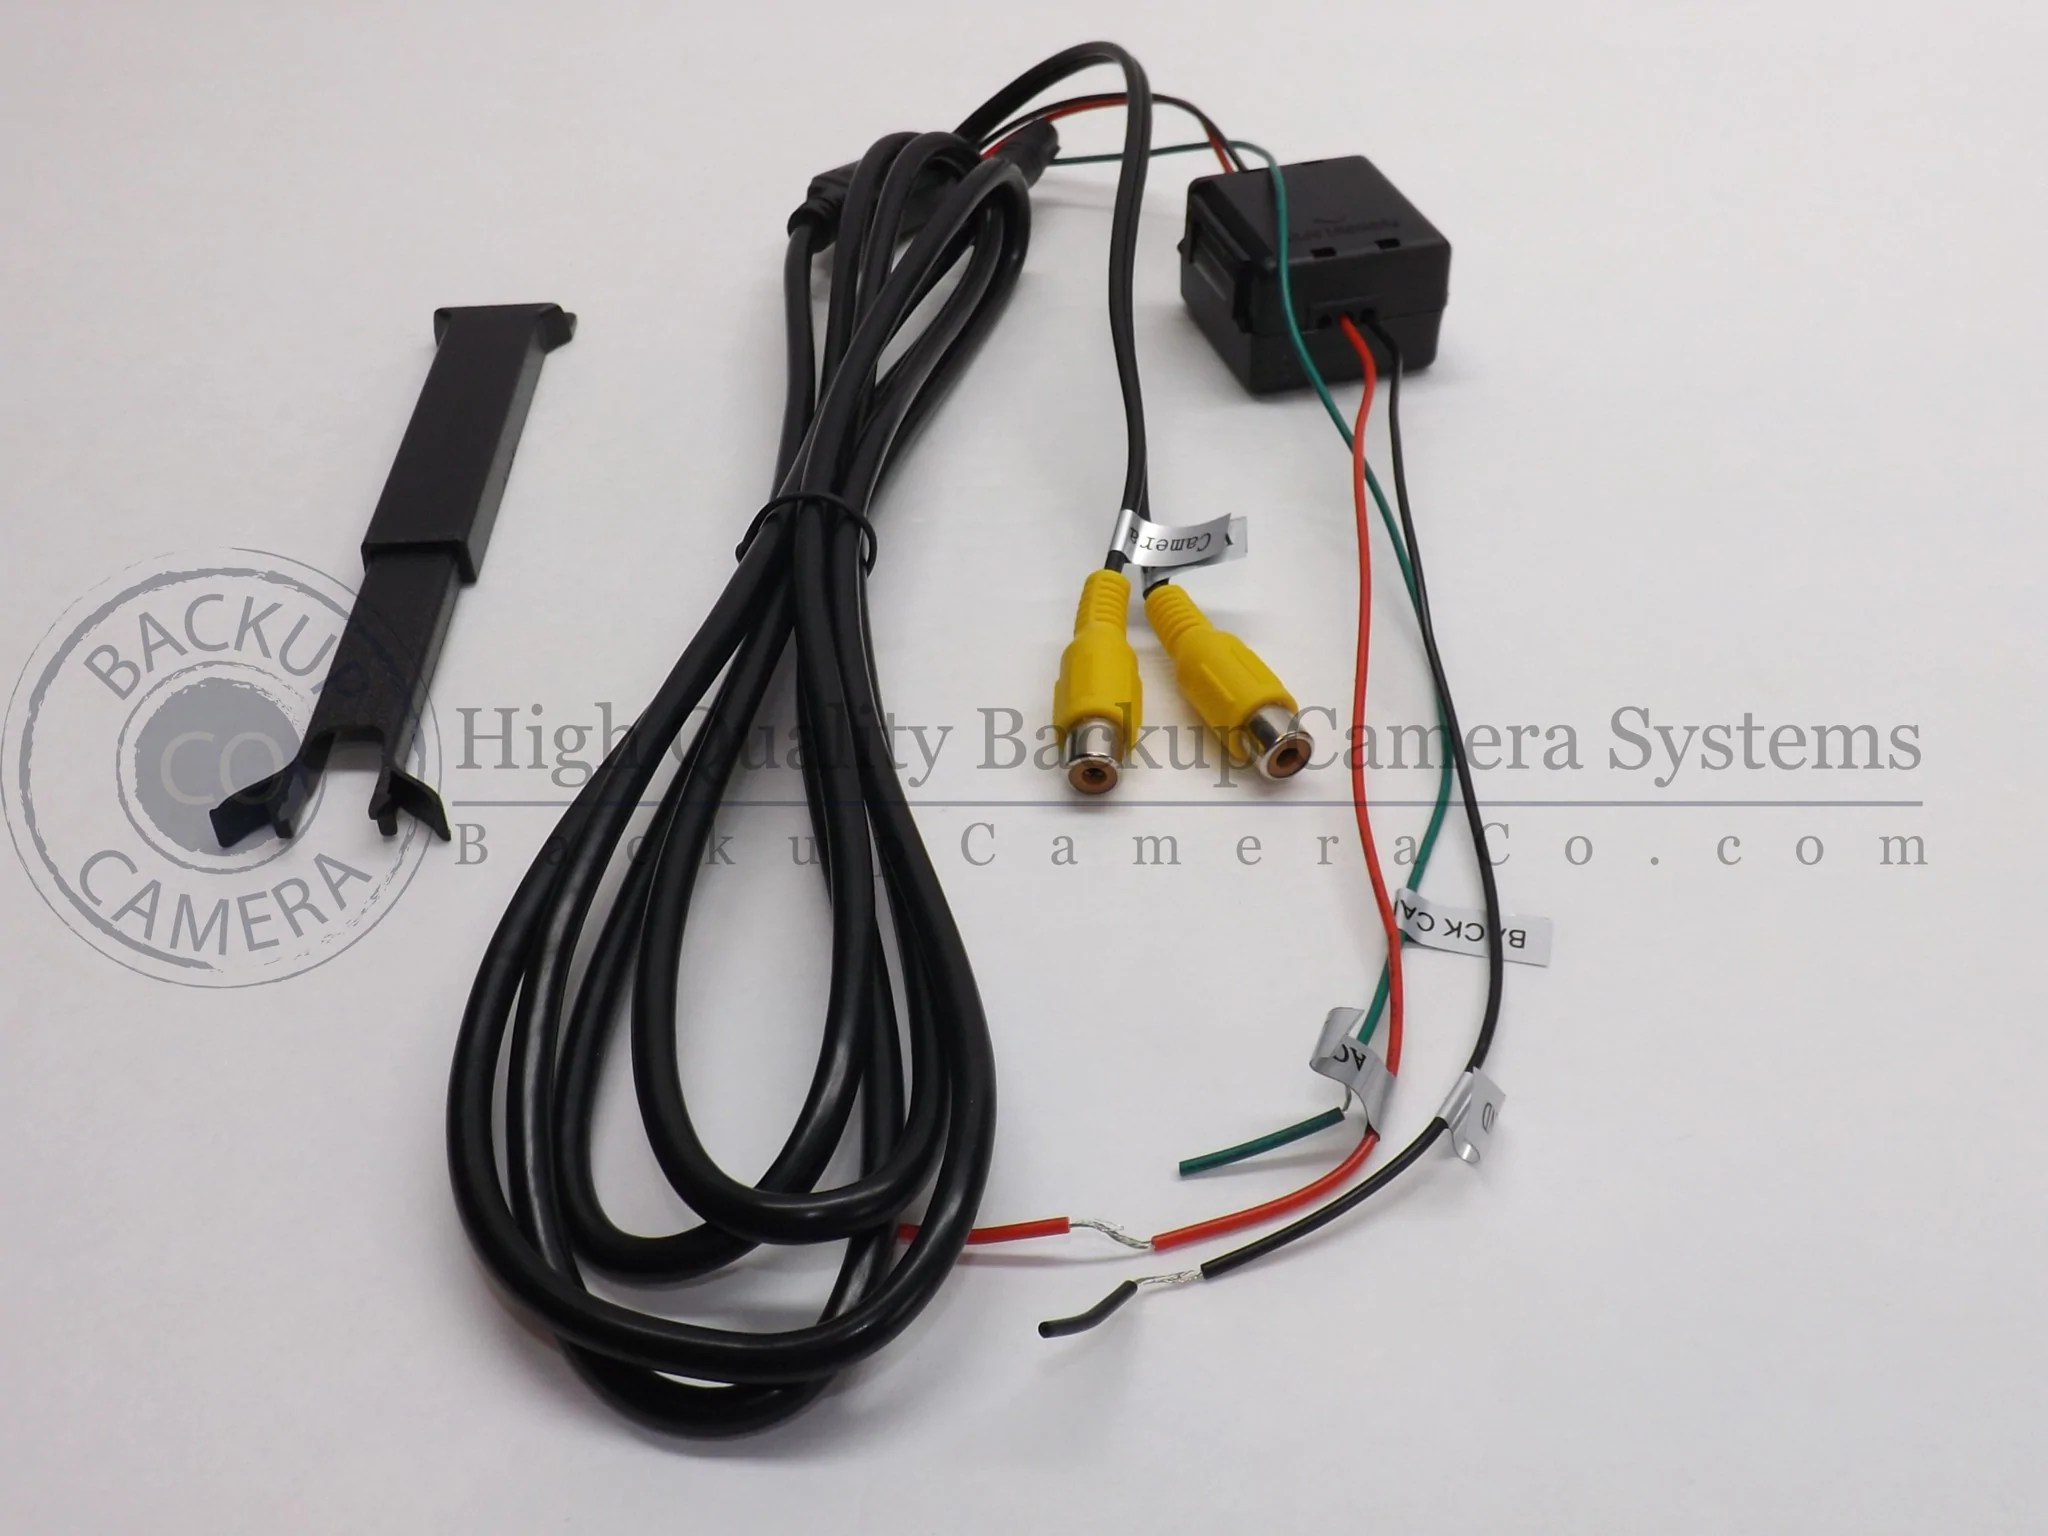 hight resolution of auto dimming oem replacement rear view mirror with 4 3 lcd display for back up camera